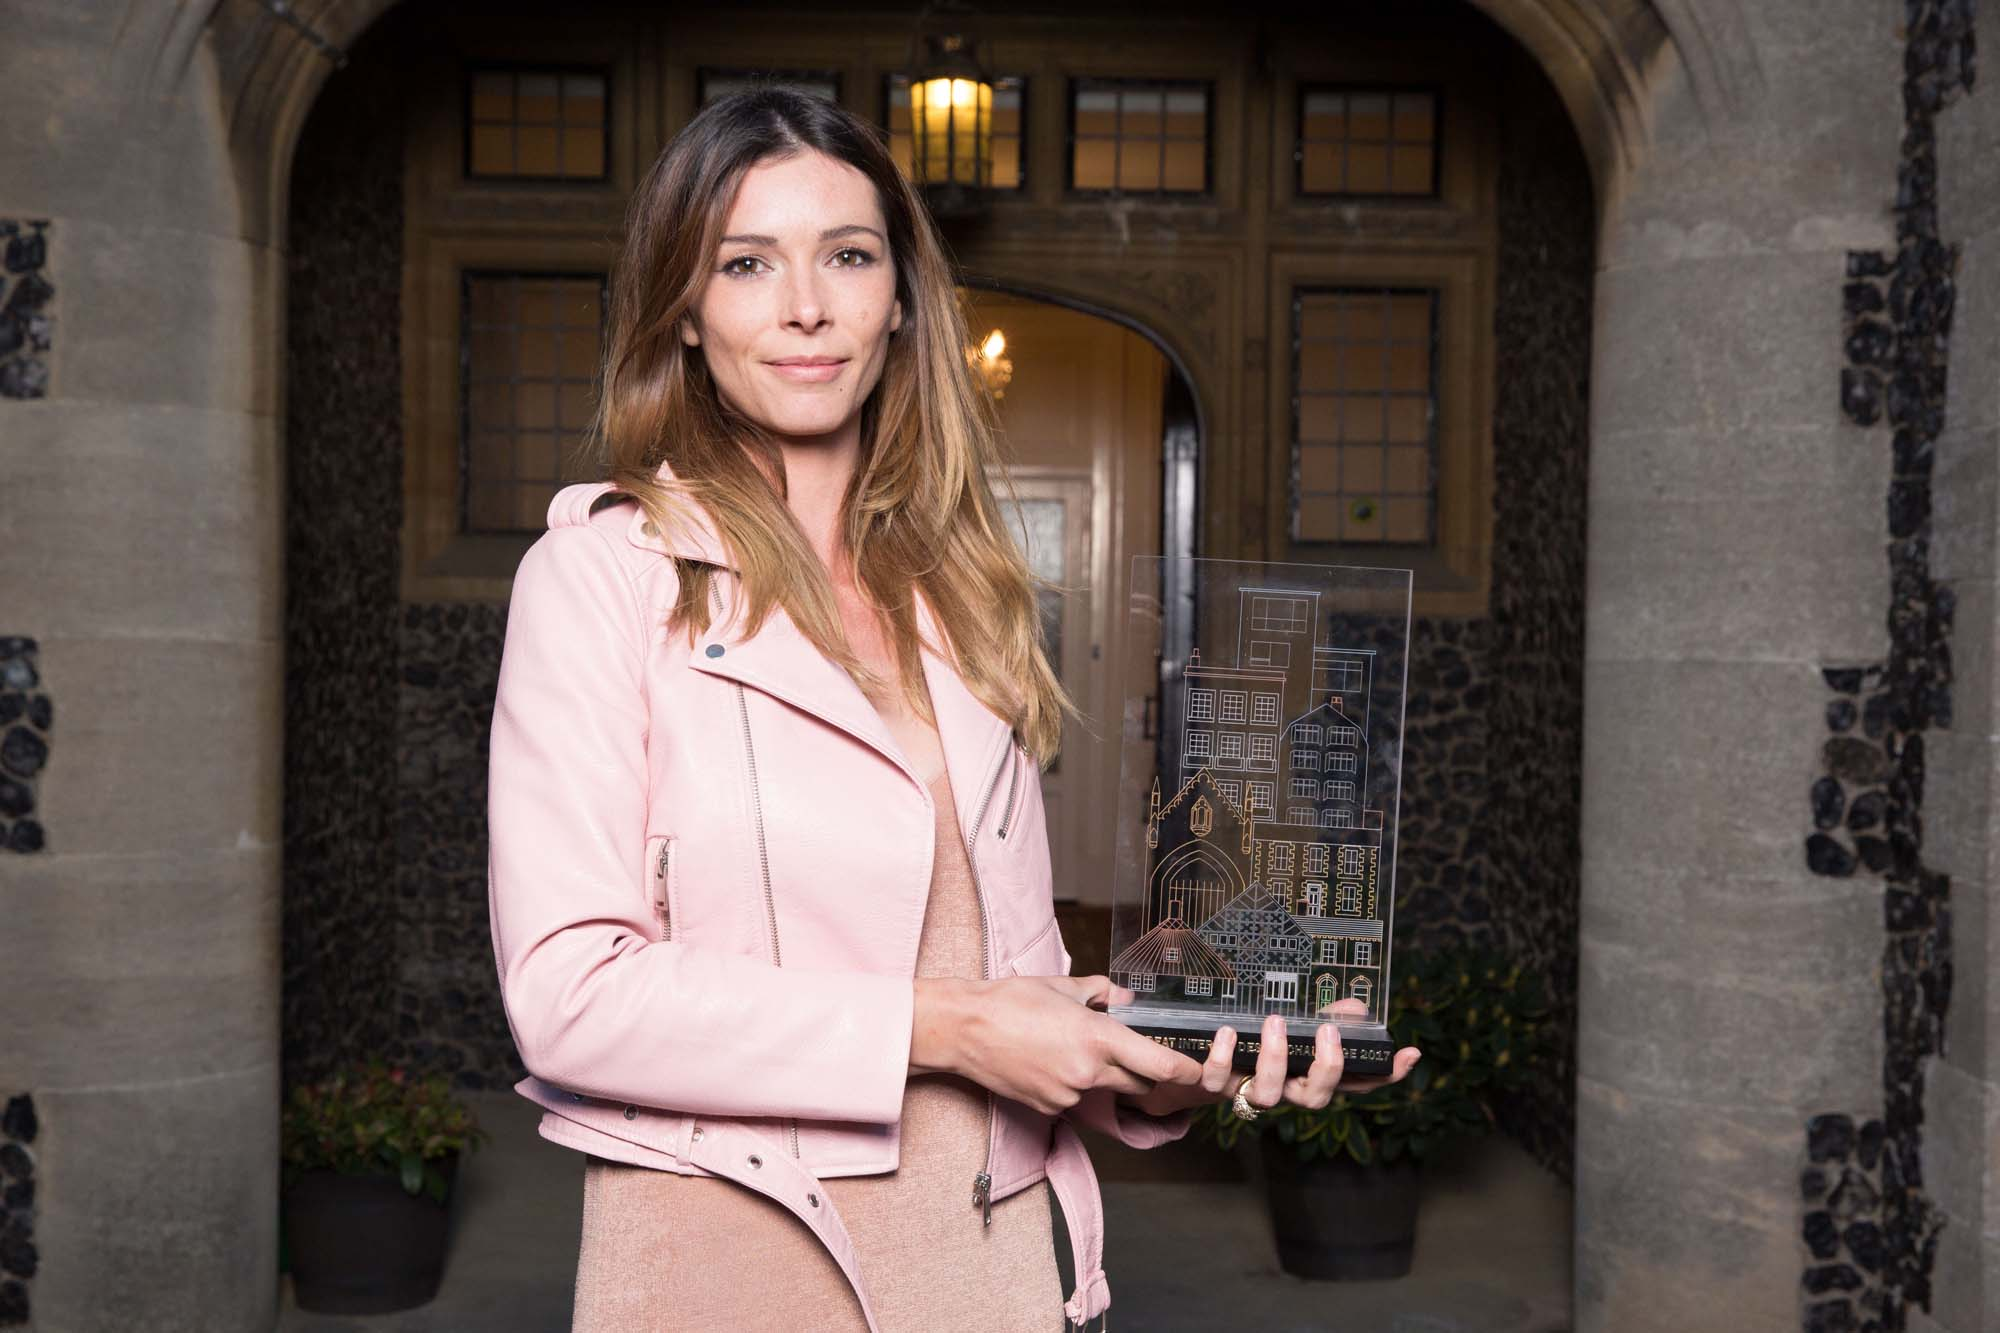 The Pink House Meets The Great Interior Design Challenge Winner Daniela Tasca York The Pink House